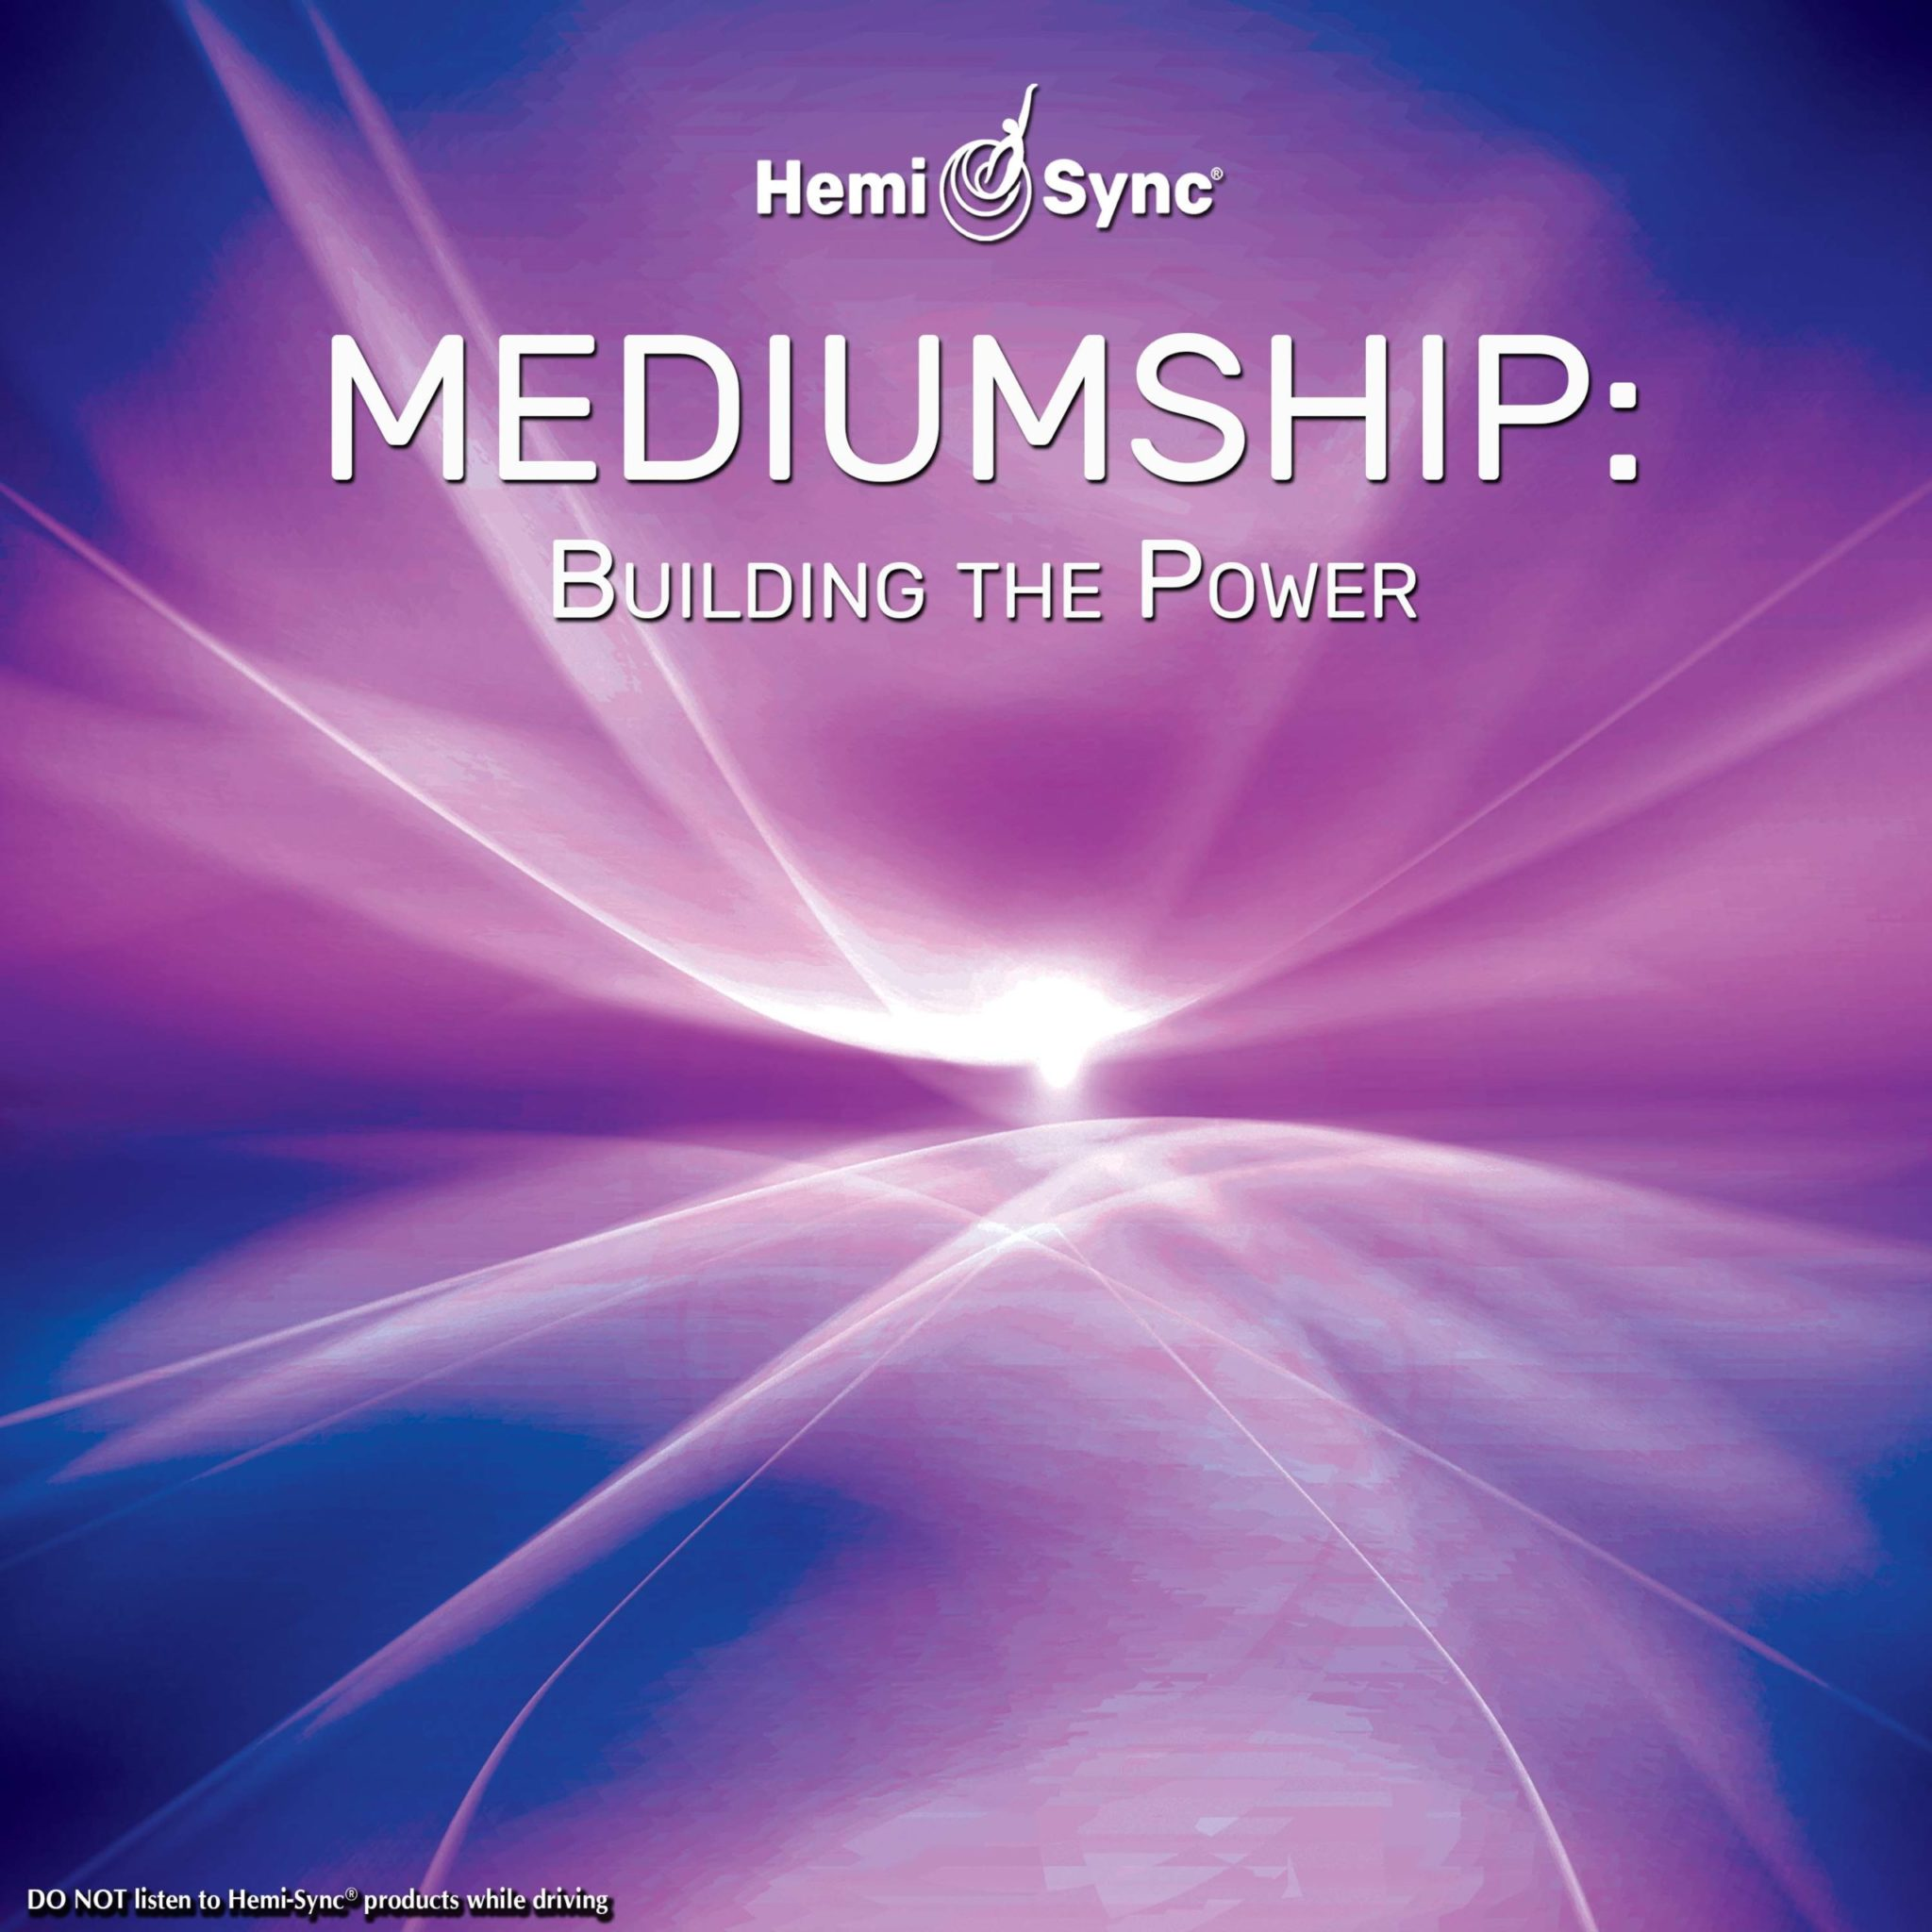 Mediumship_Building-the-Power_2020-scaled.jpg